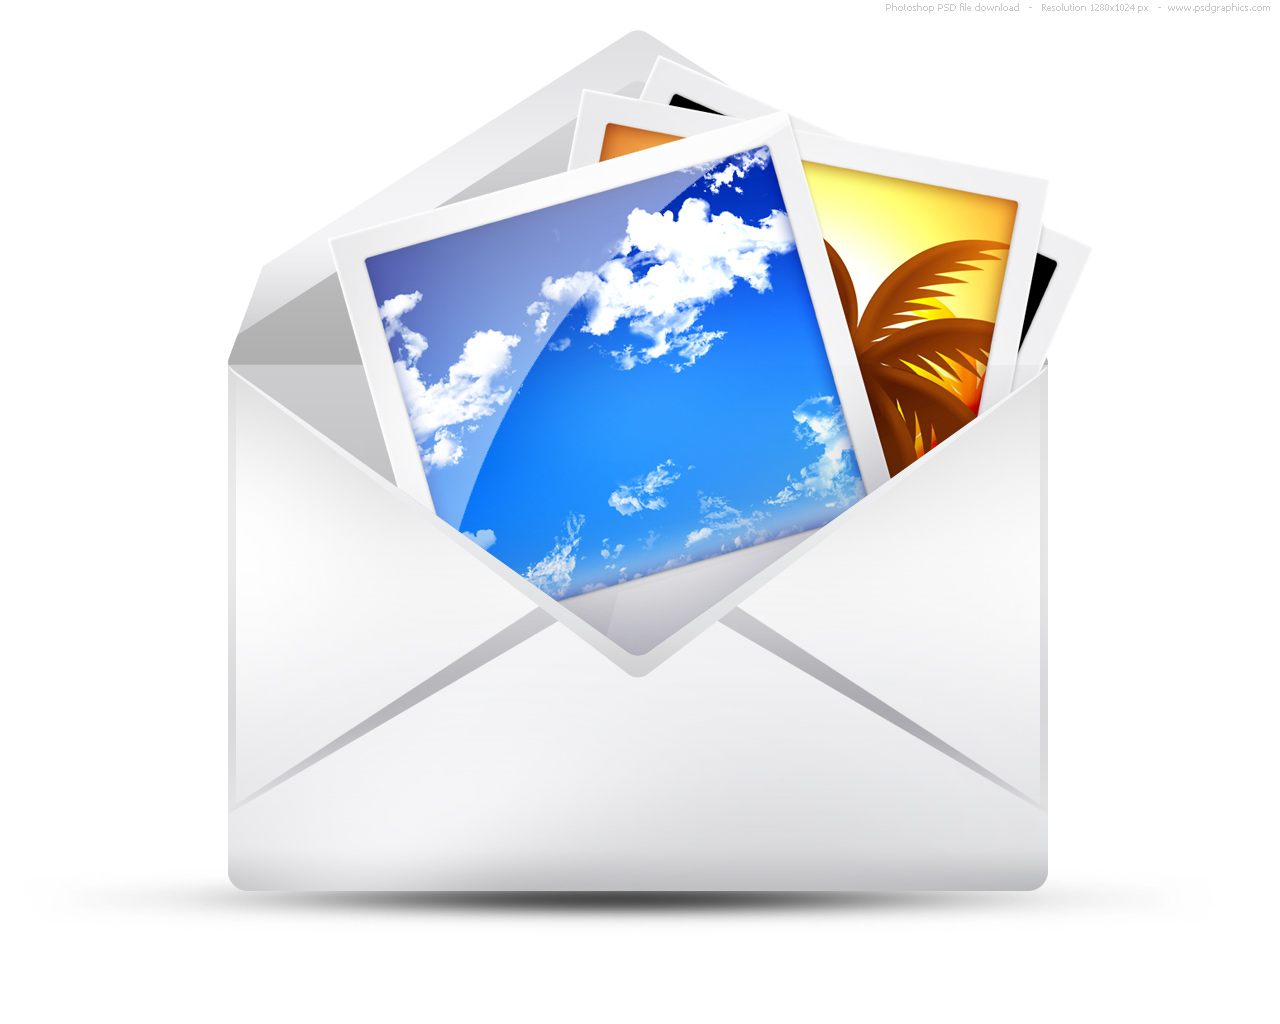 11 email envelope icon images